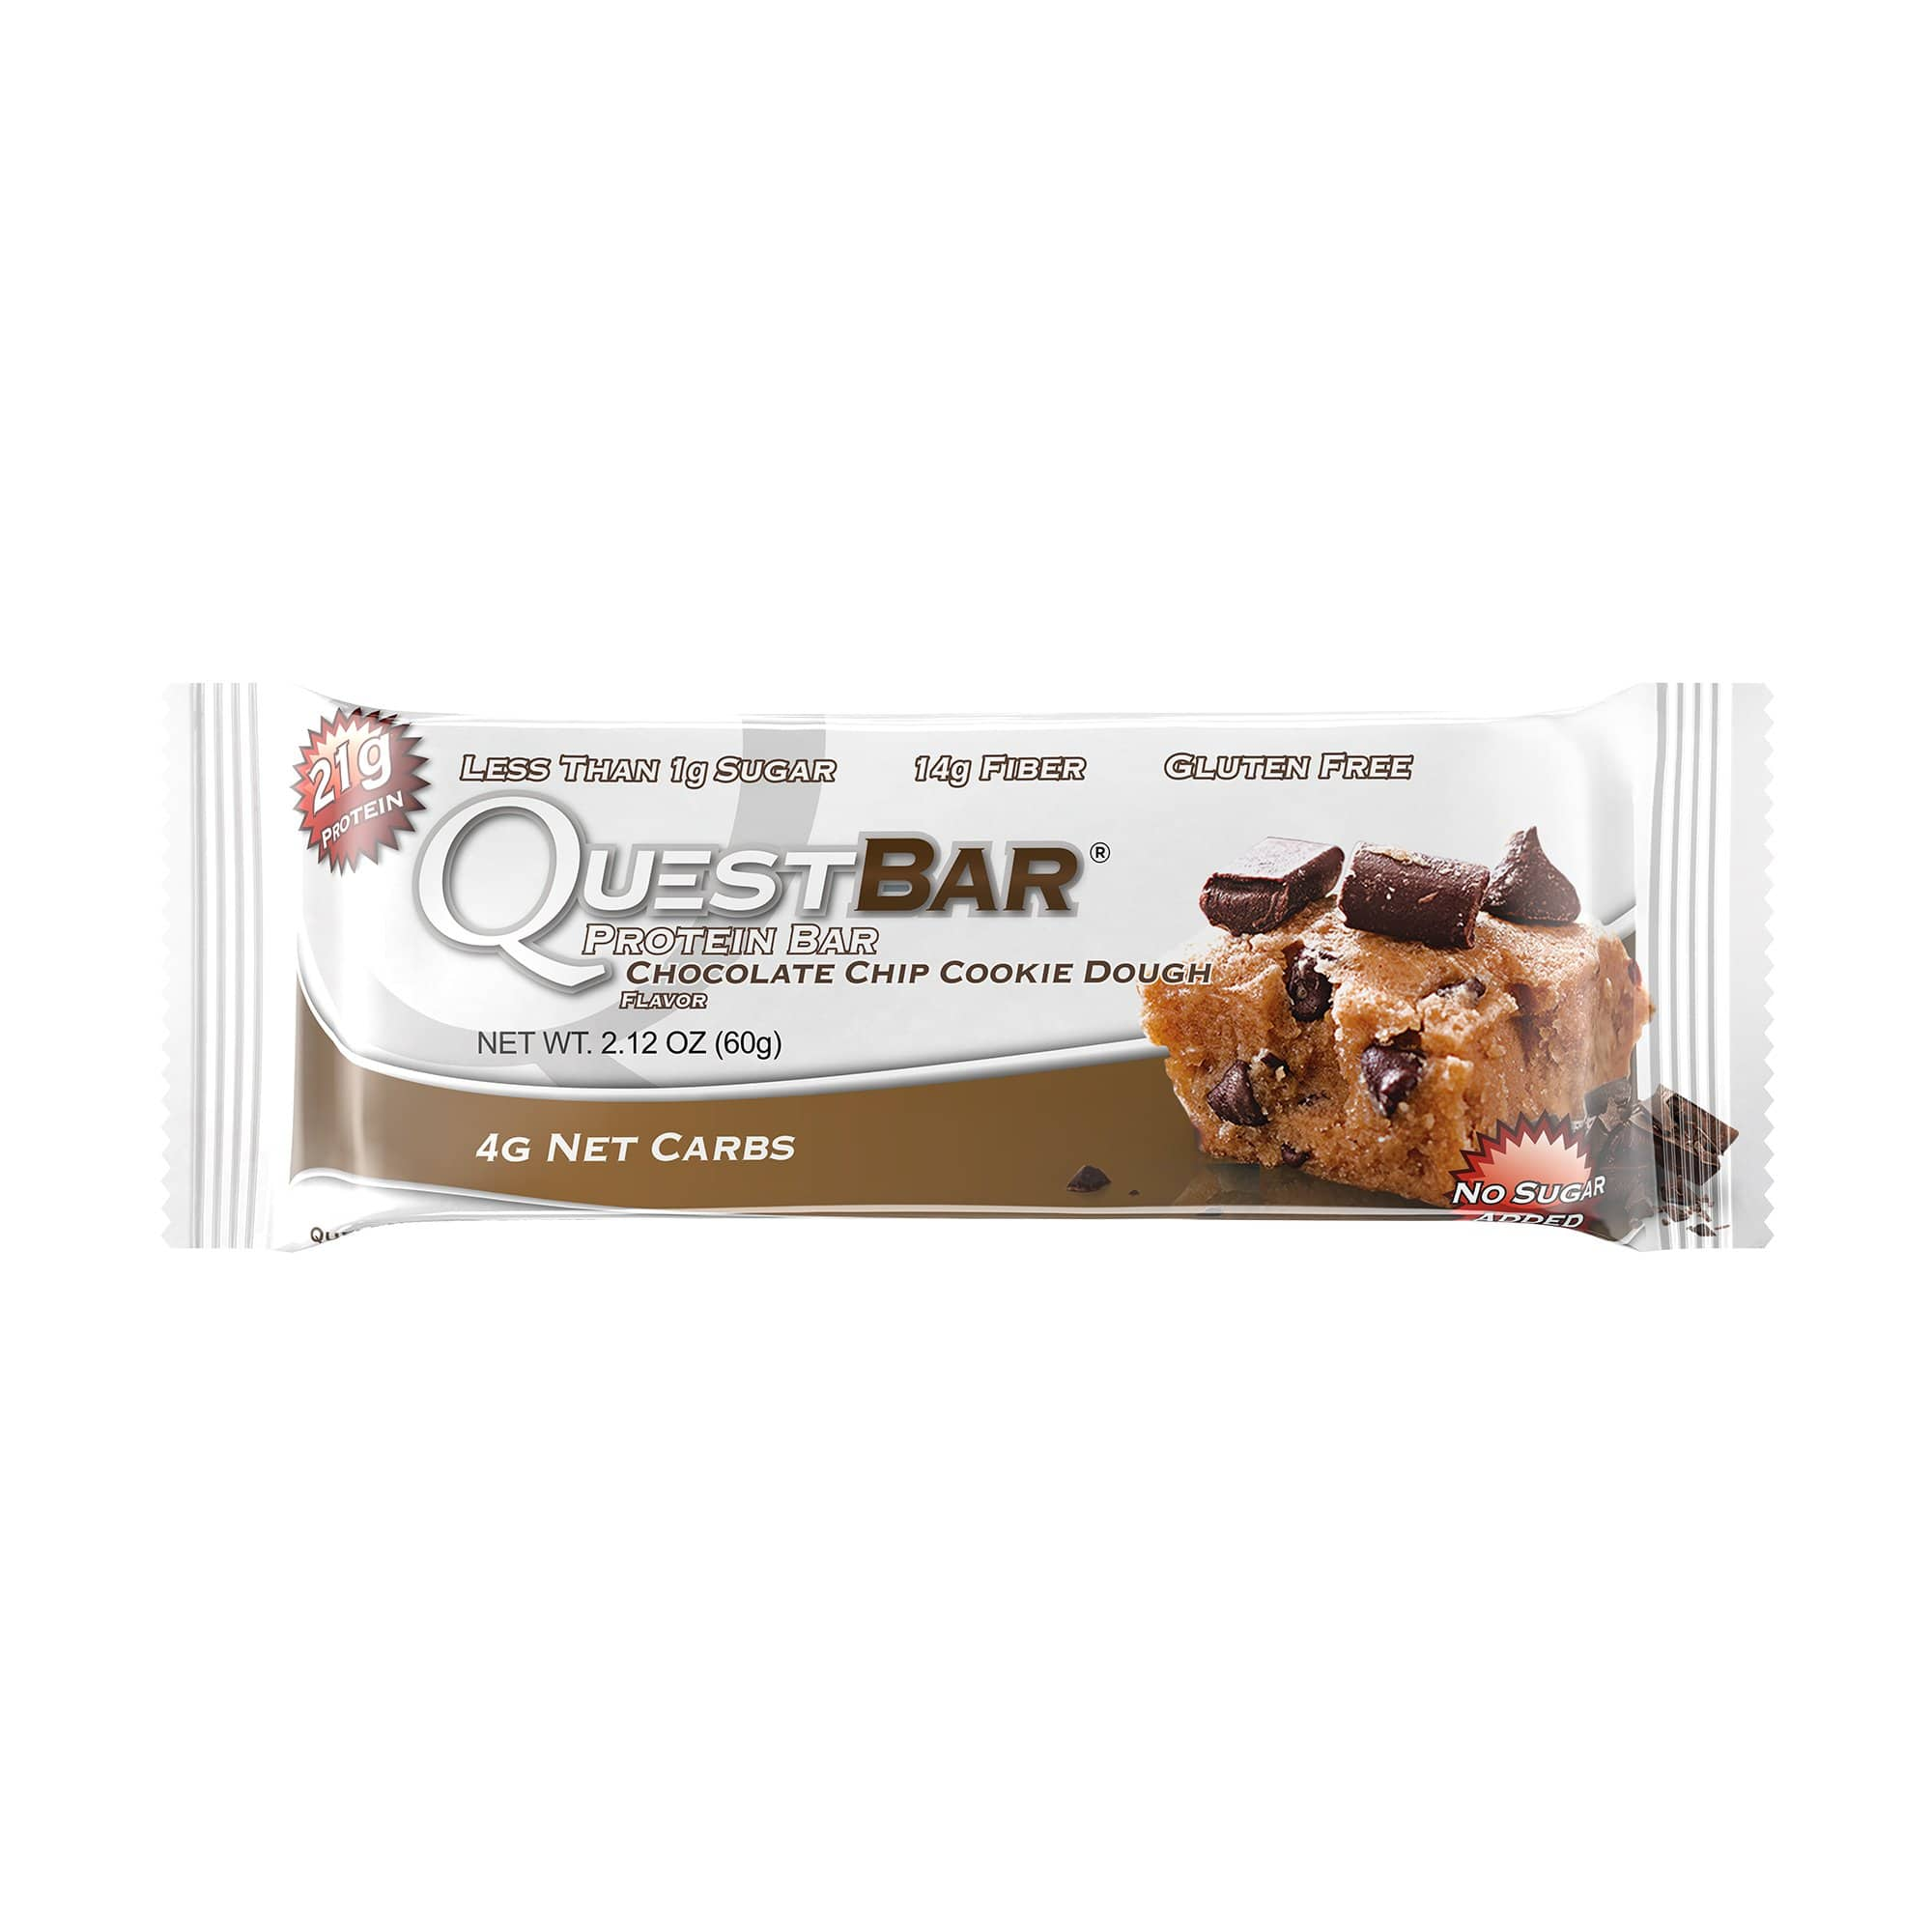 Quest Nutrition Protein Bar, Maple Waffle, 12 Count - $17.42 after 30% coupon